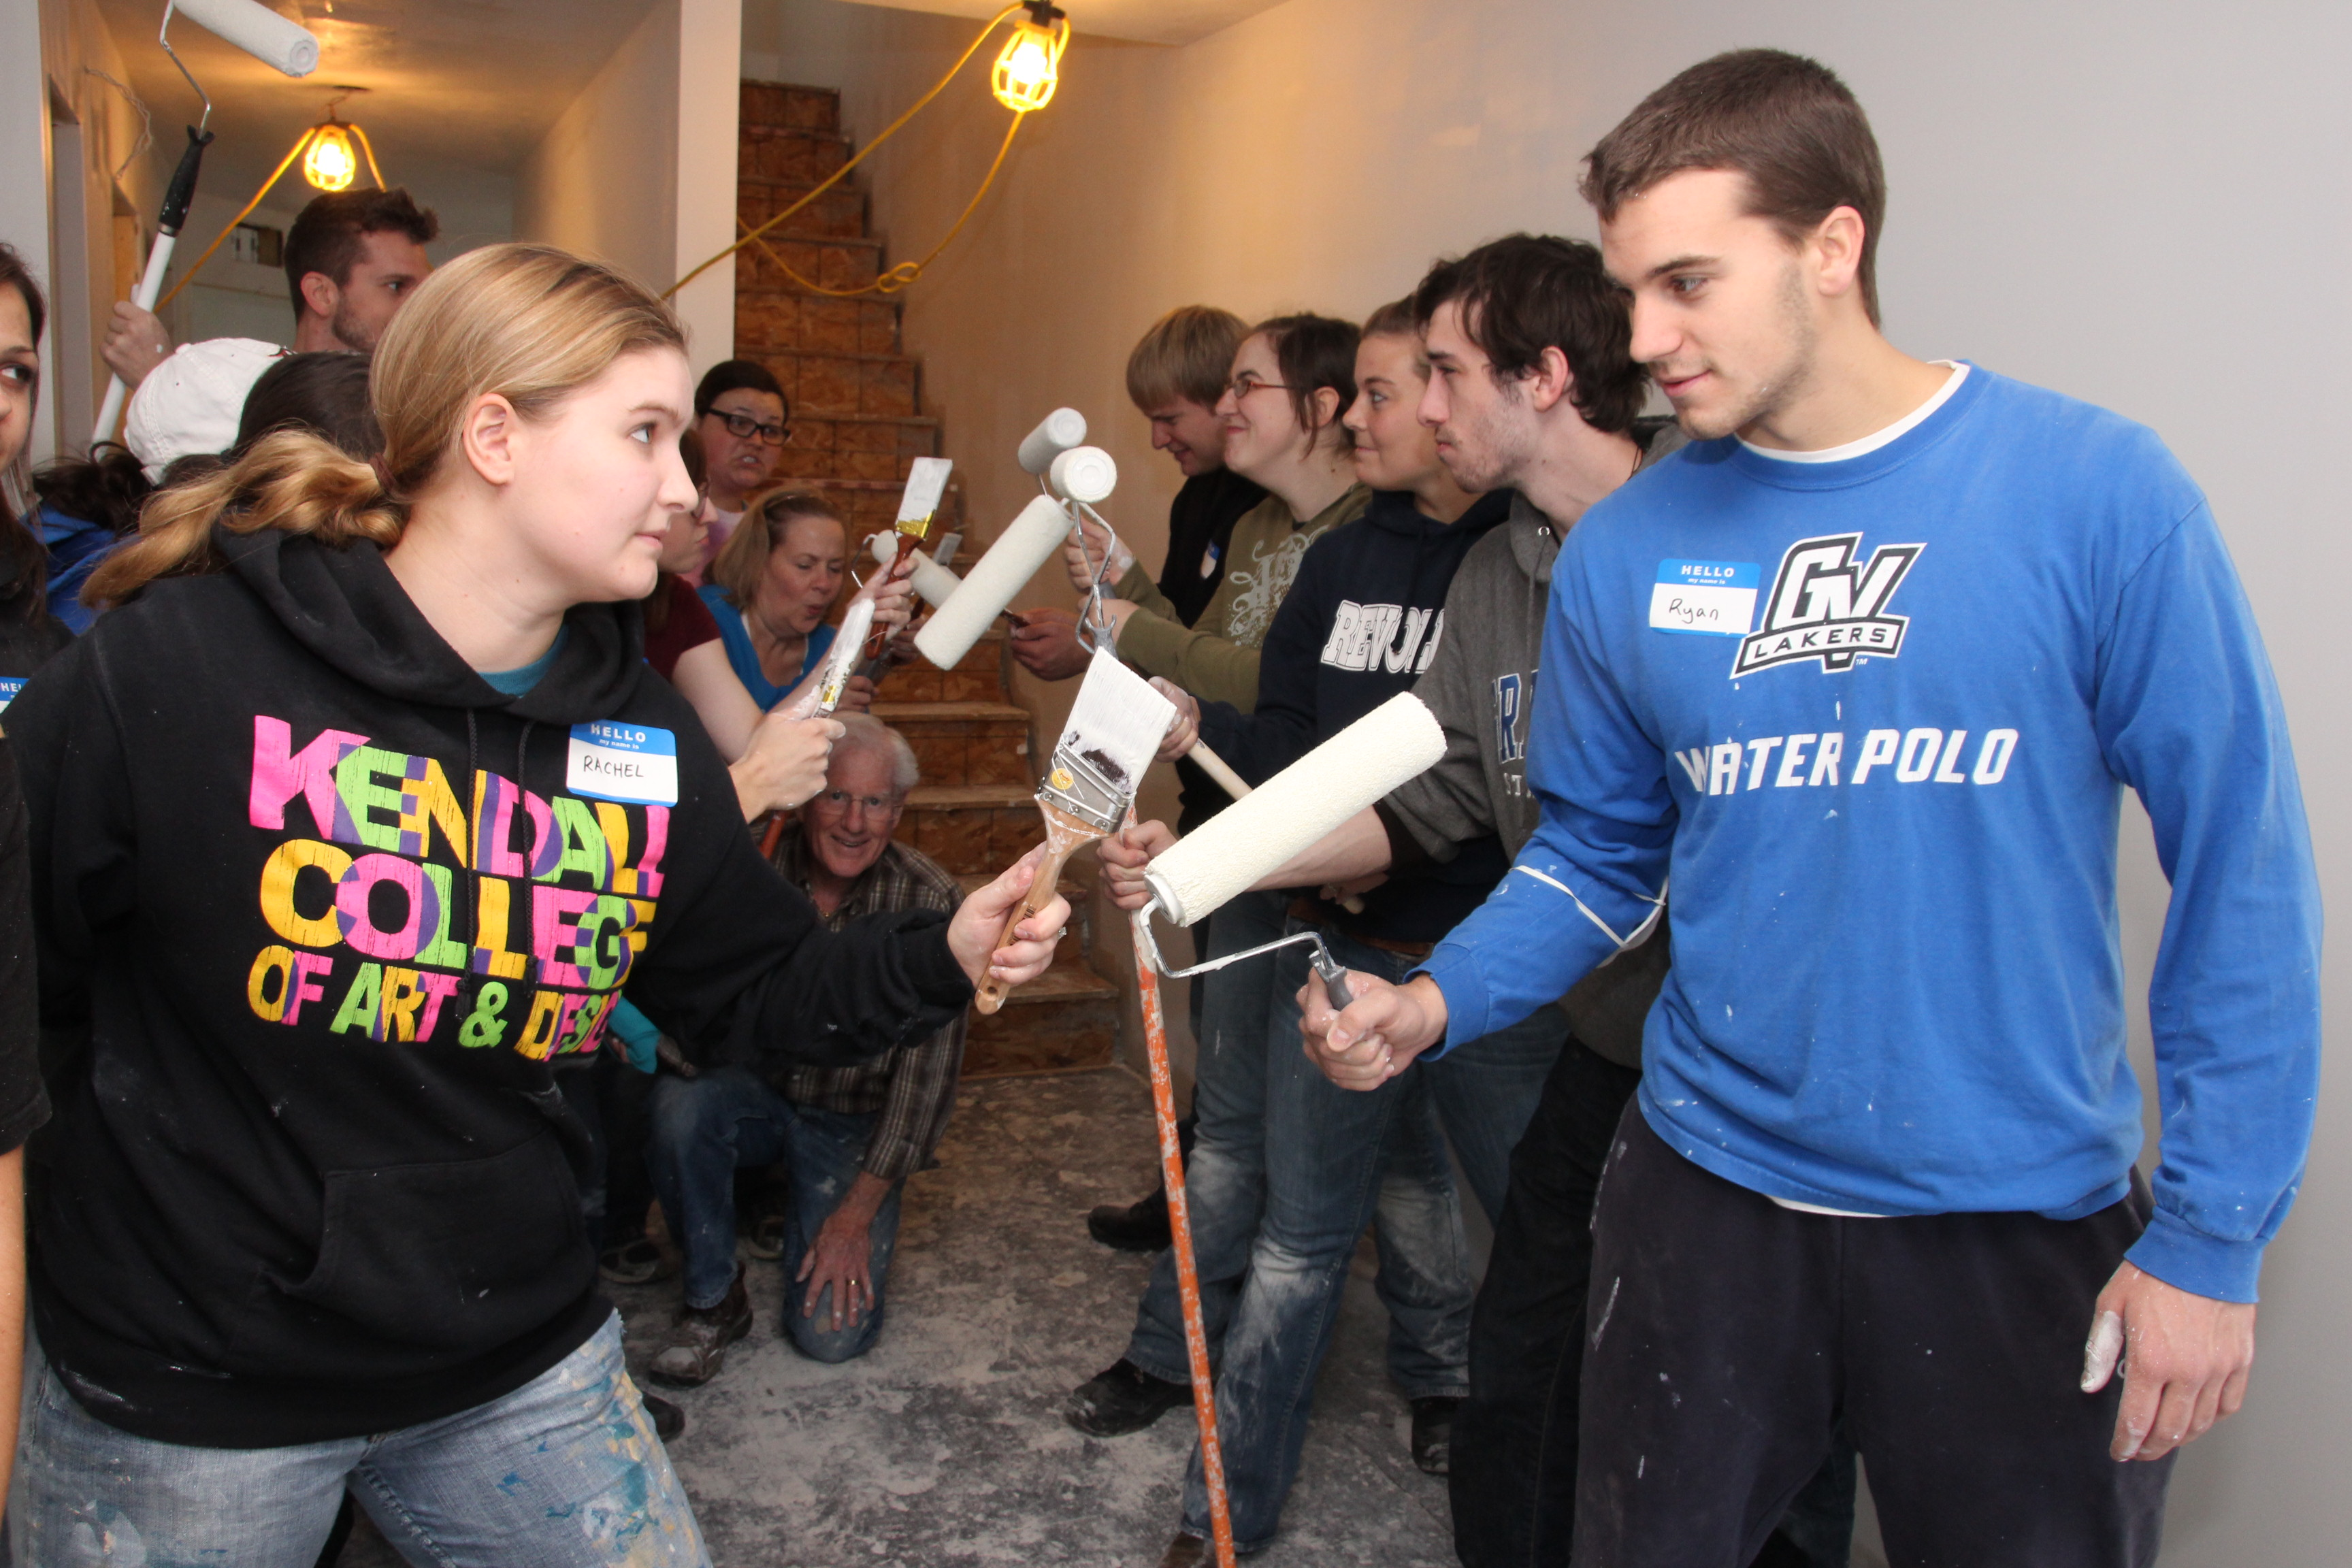 New Bites Interior Design Students Help Make Local Habitat For Humanity House Shine Kendall College Of Art And Design Of Ferris State University